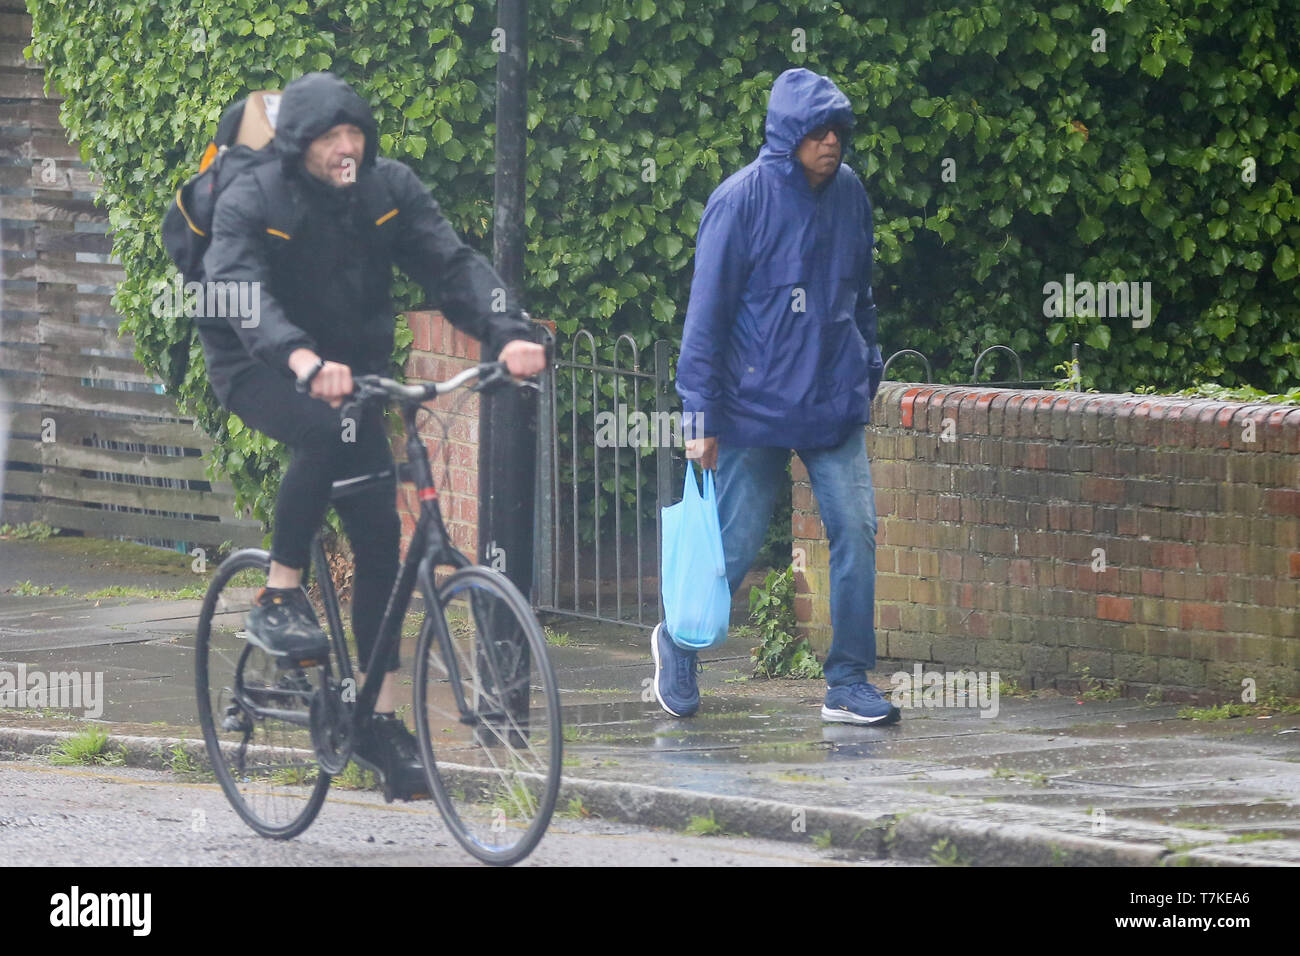 London, UK. 8th May, 2019. A man shelters from the rain in London during rain and wet weather. According to the Met Office, rain is forecasted for the next four days. Credit: Dinendra Haria/Alamy Live News Stock Photo